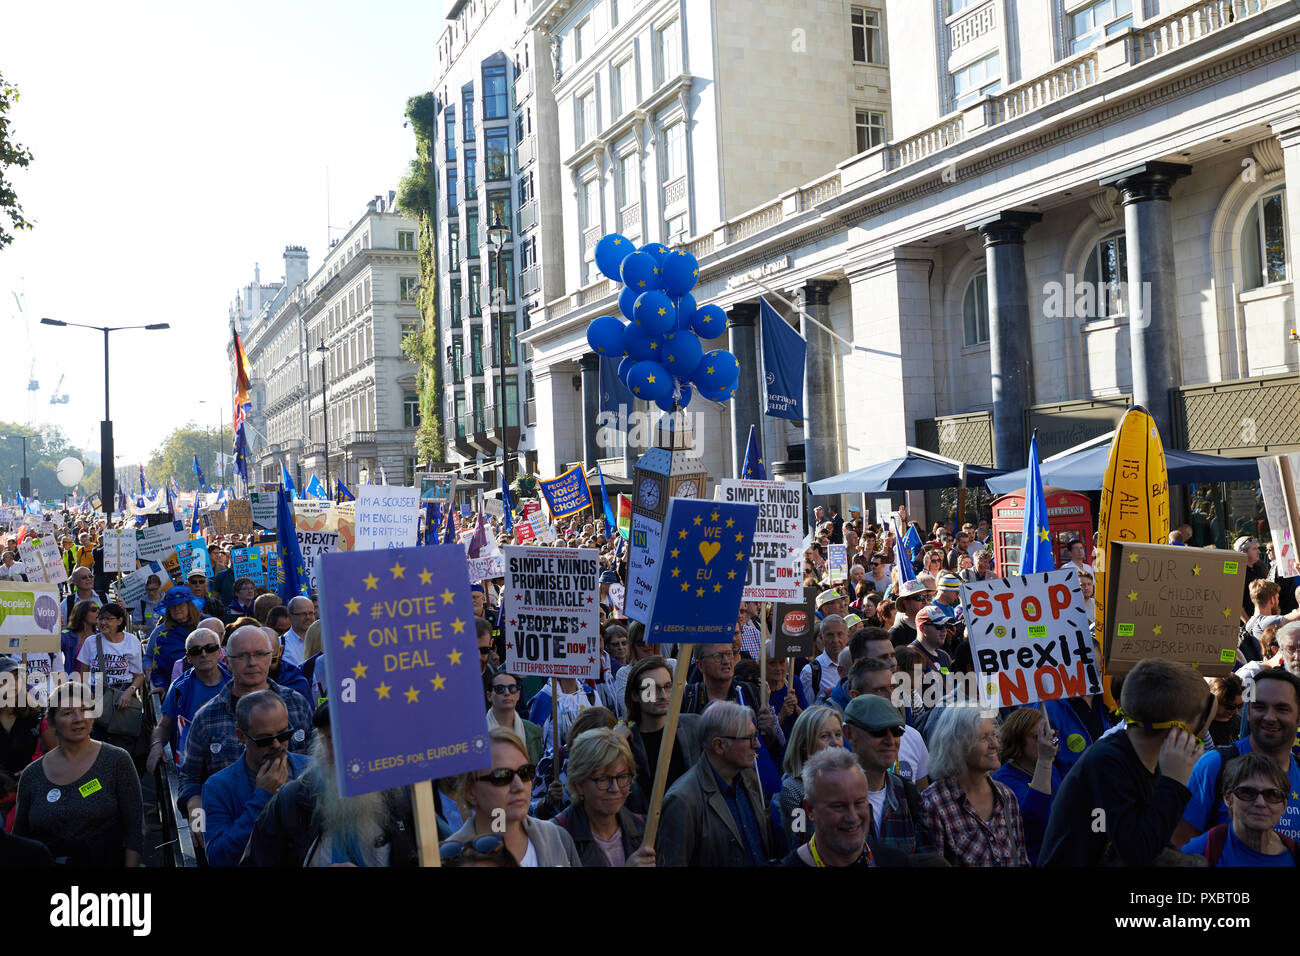 London, UK. 20th Oct, 2018. Placards held aloft at the People's Vote march through the centre of London. Credit: Kevin J. Frost/Alamy Live News Stock Photo